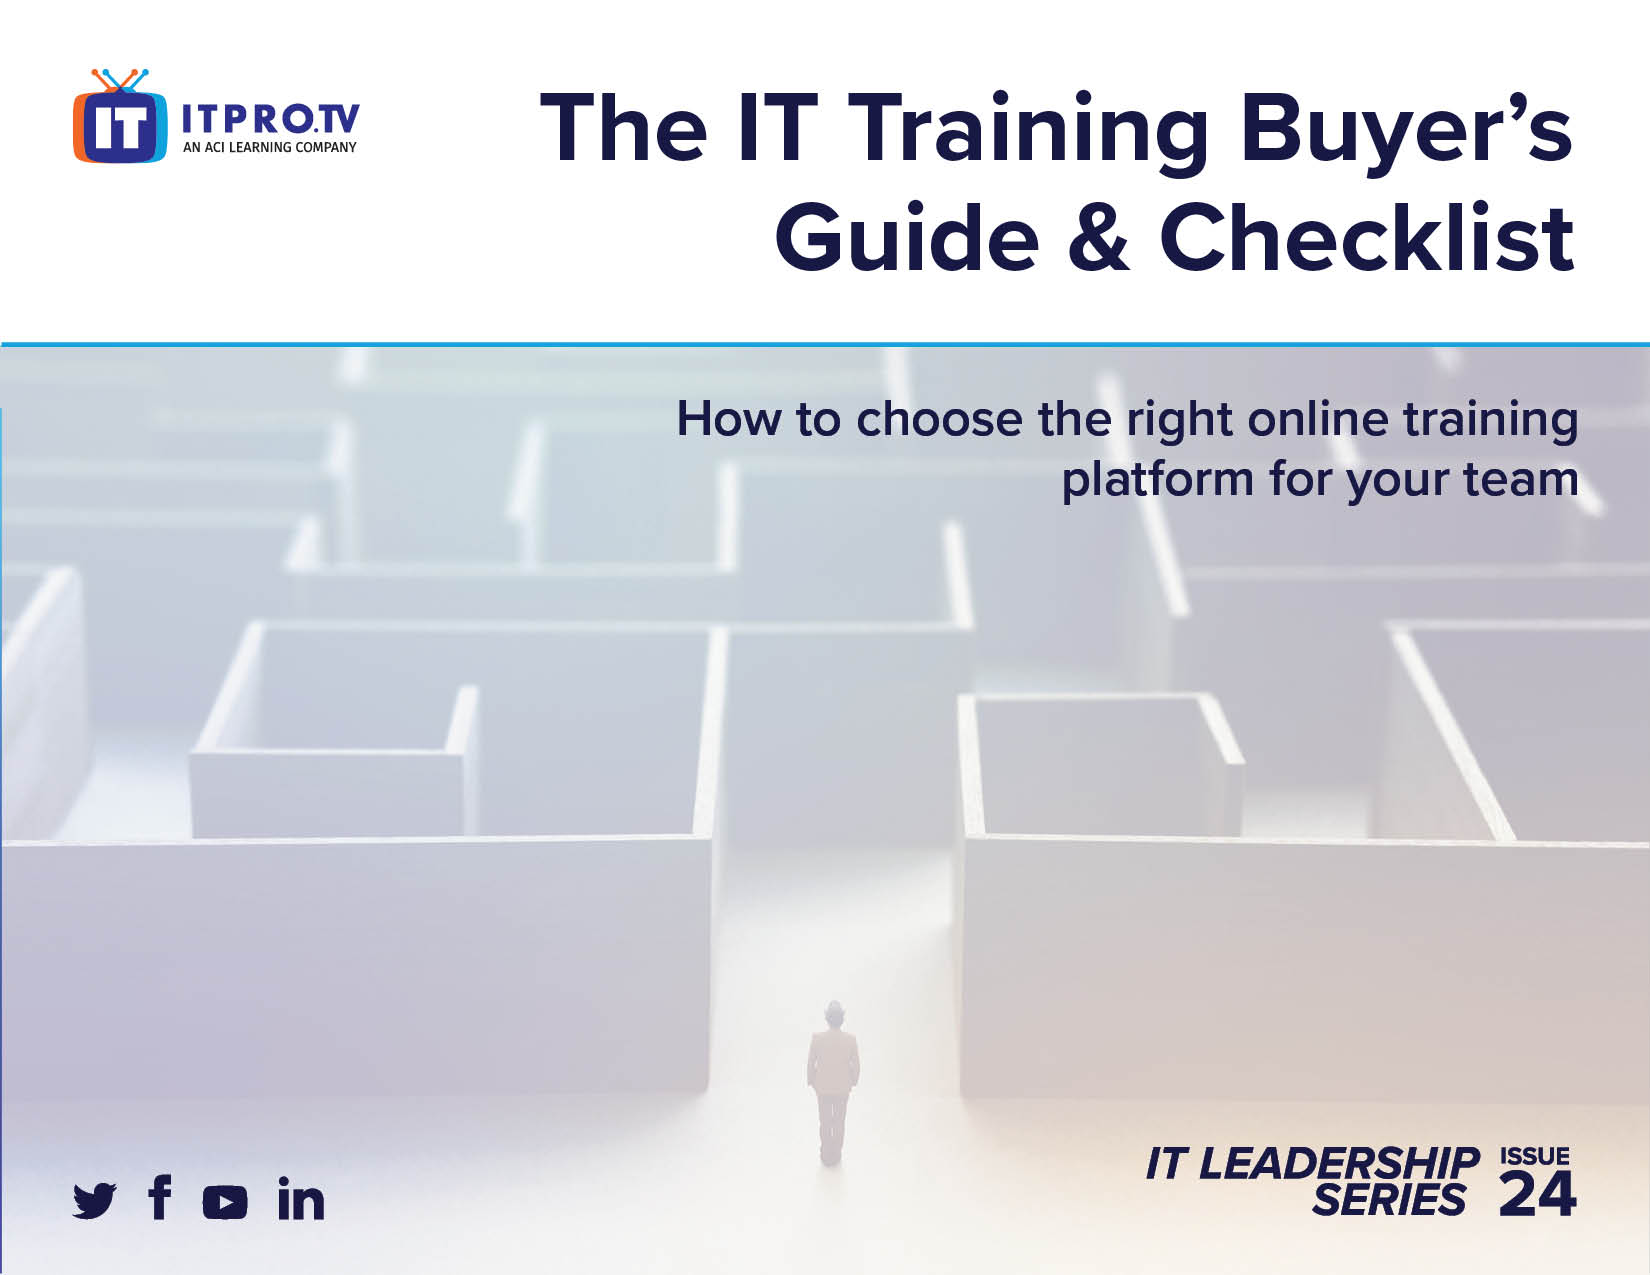 The IT Training Buyer's Guide & Checklist